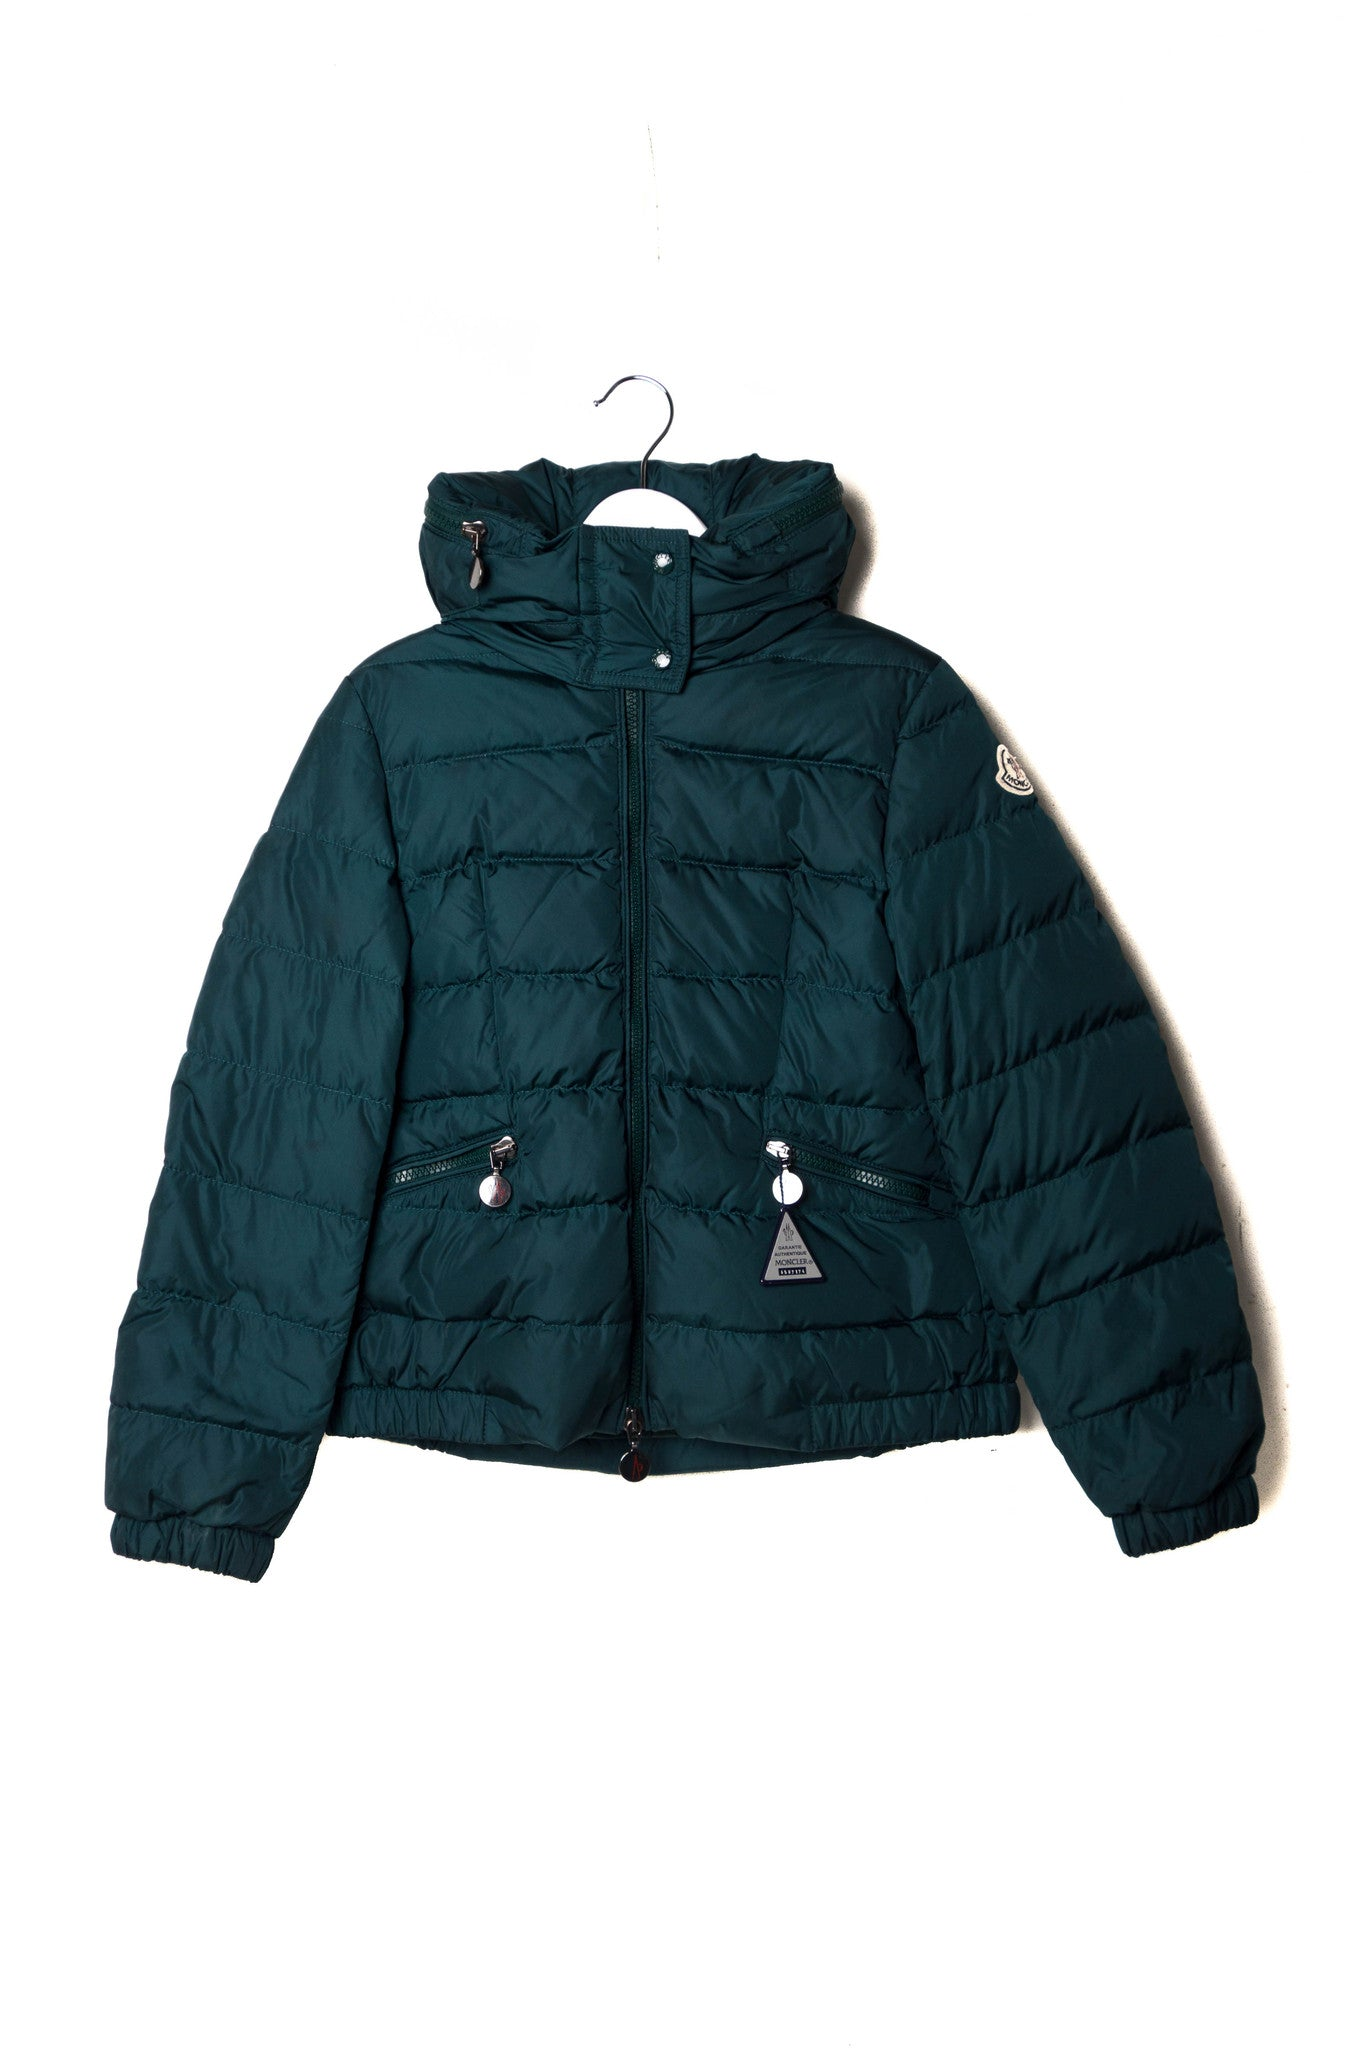 10002351 Moncler Kids~Puffer Jacket 8 at Retykle